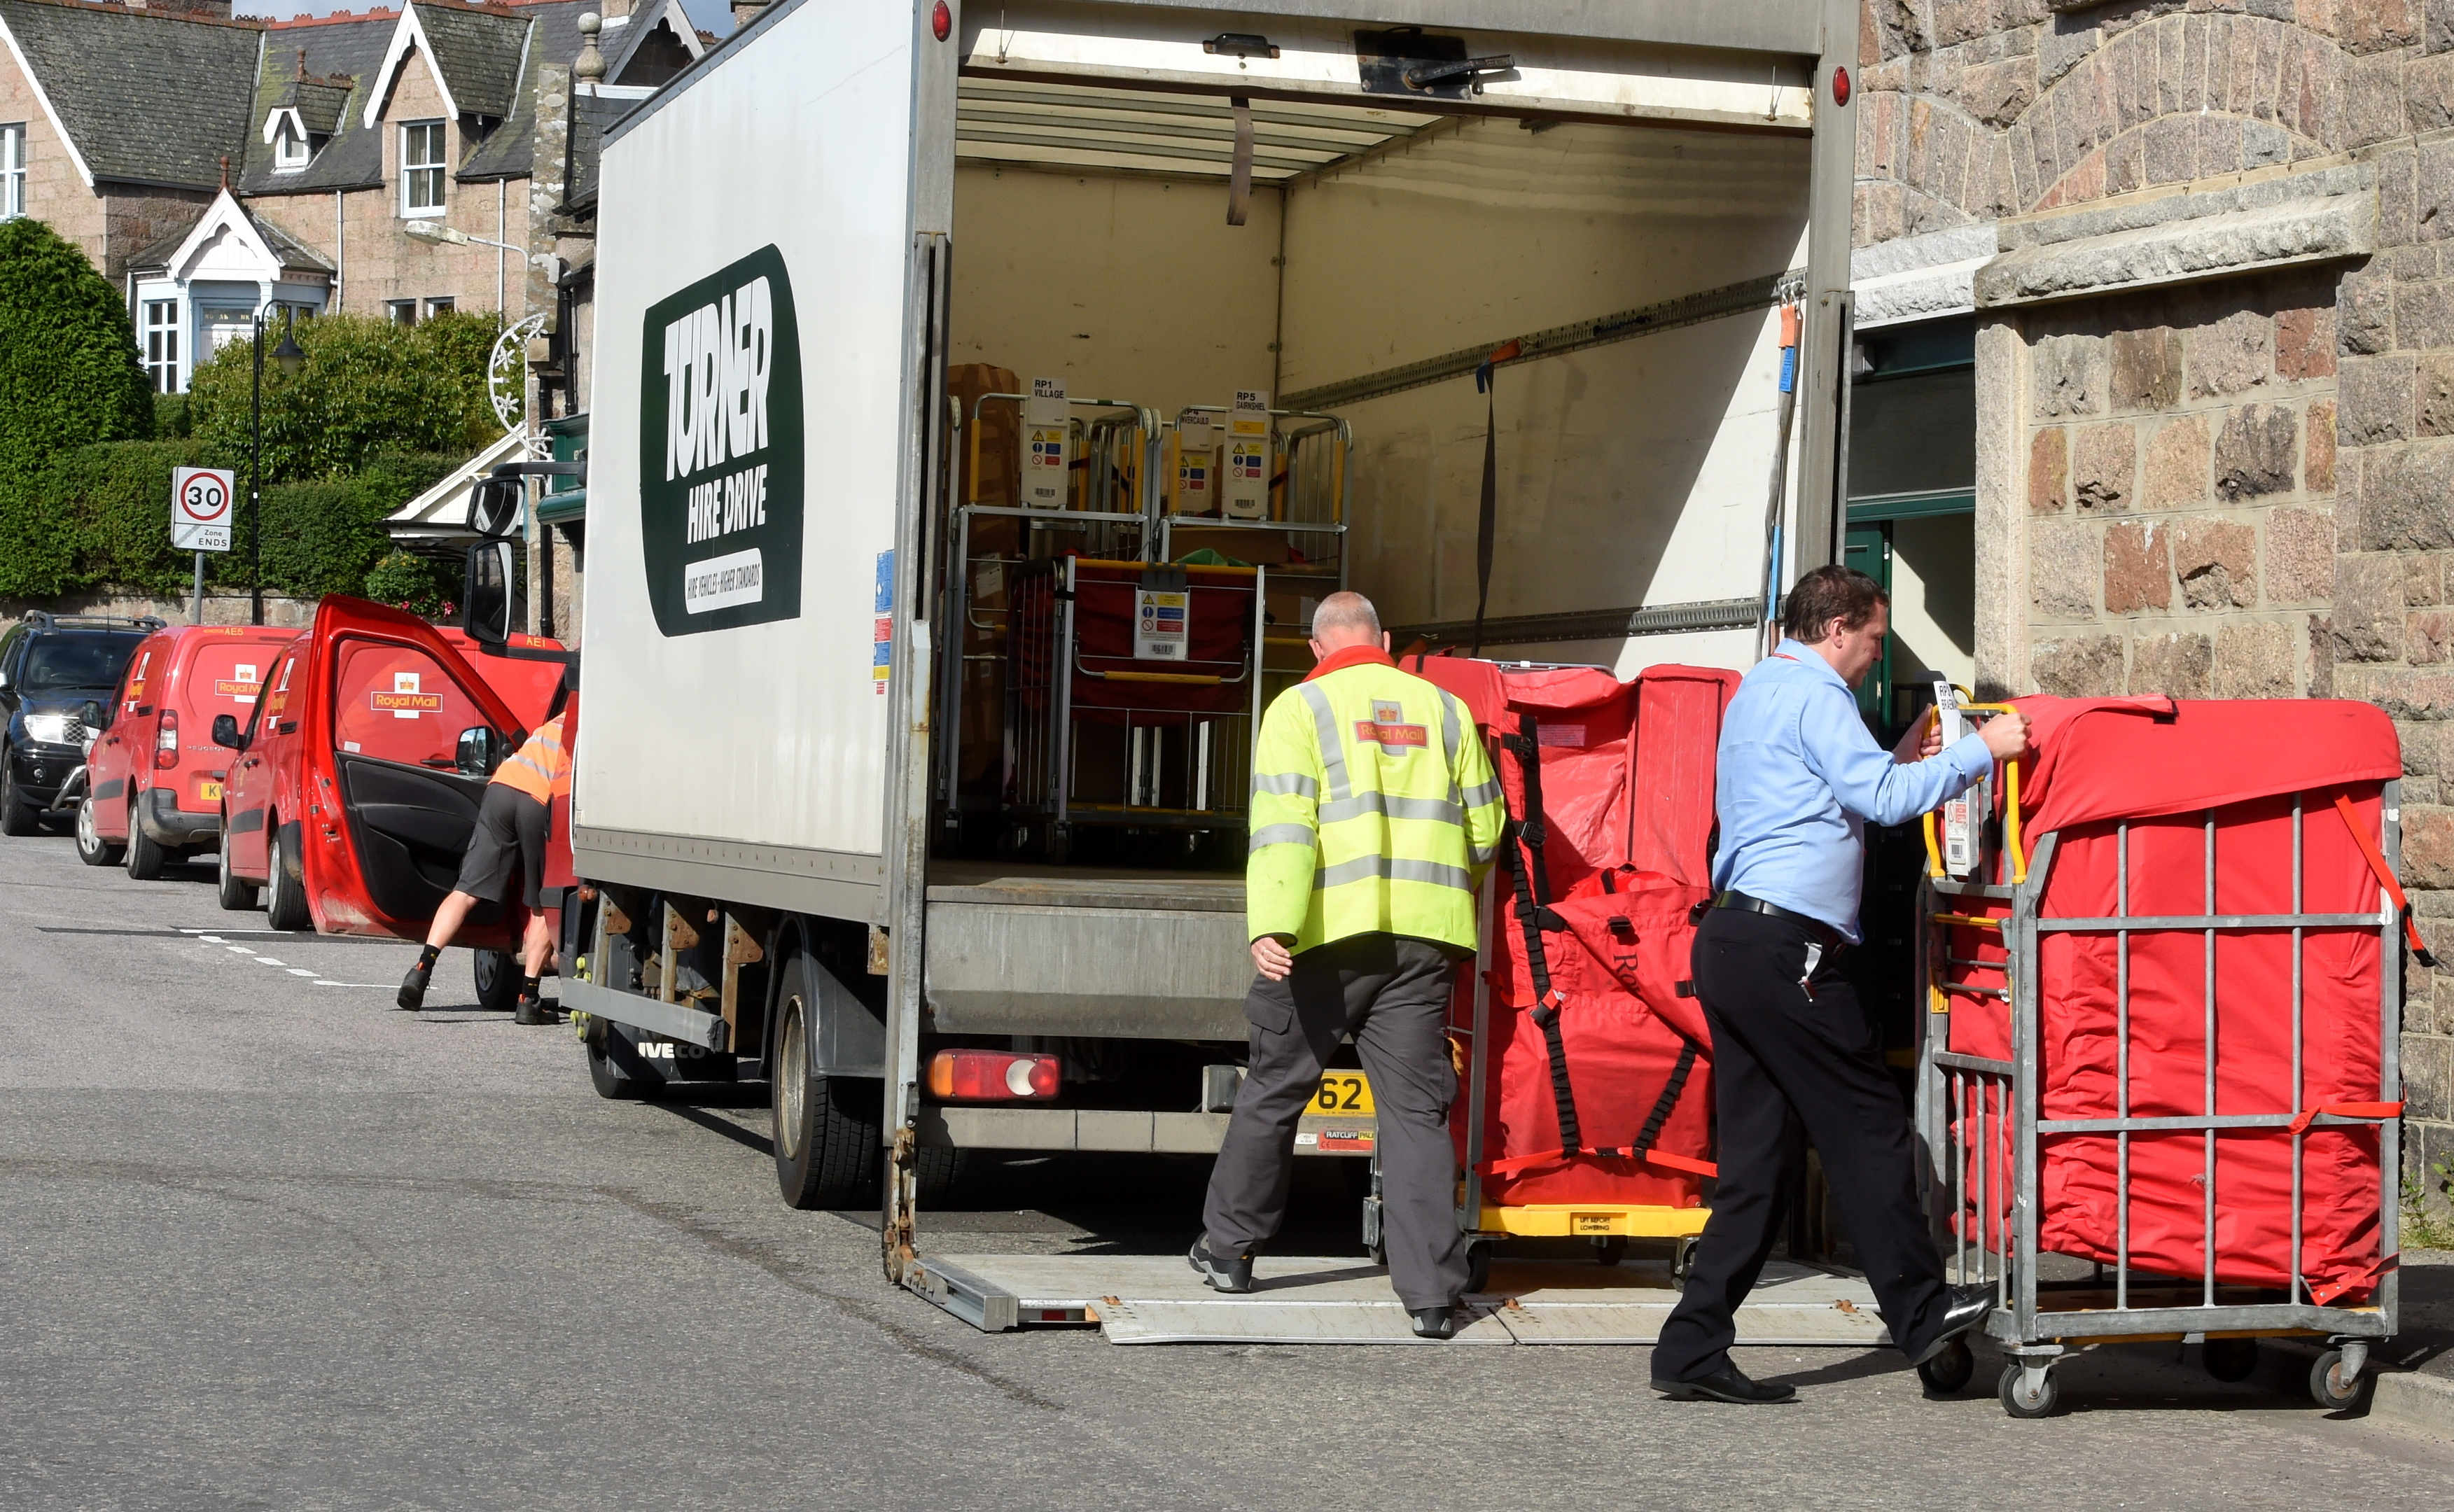 problem: With no sorting office in Ballater, post has been getting sorted in a car park.